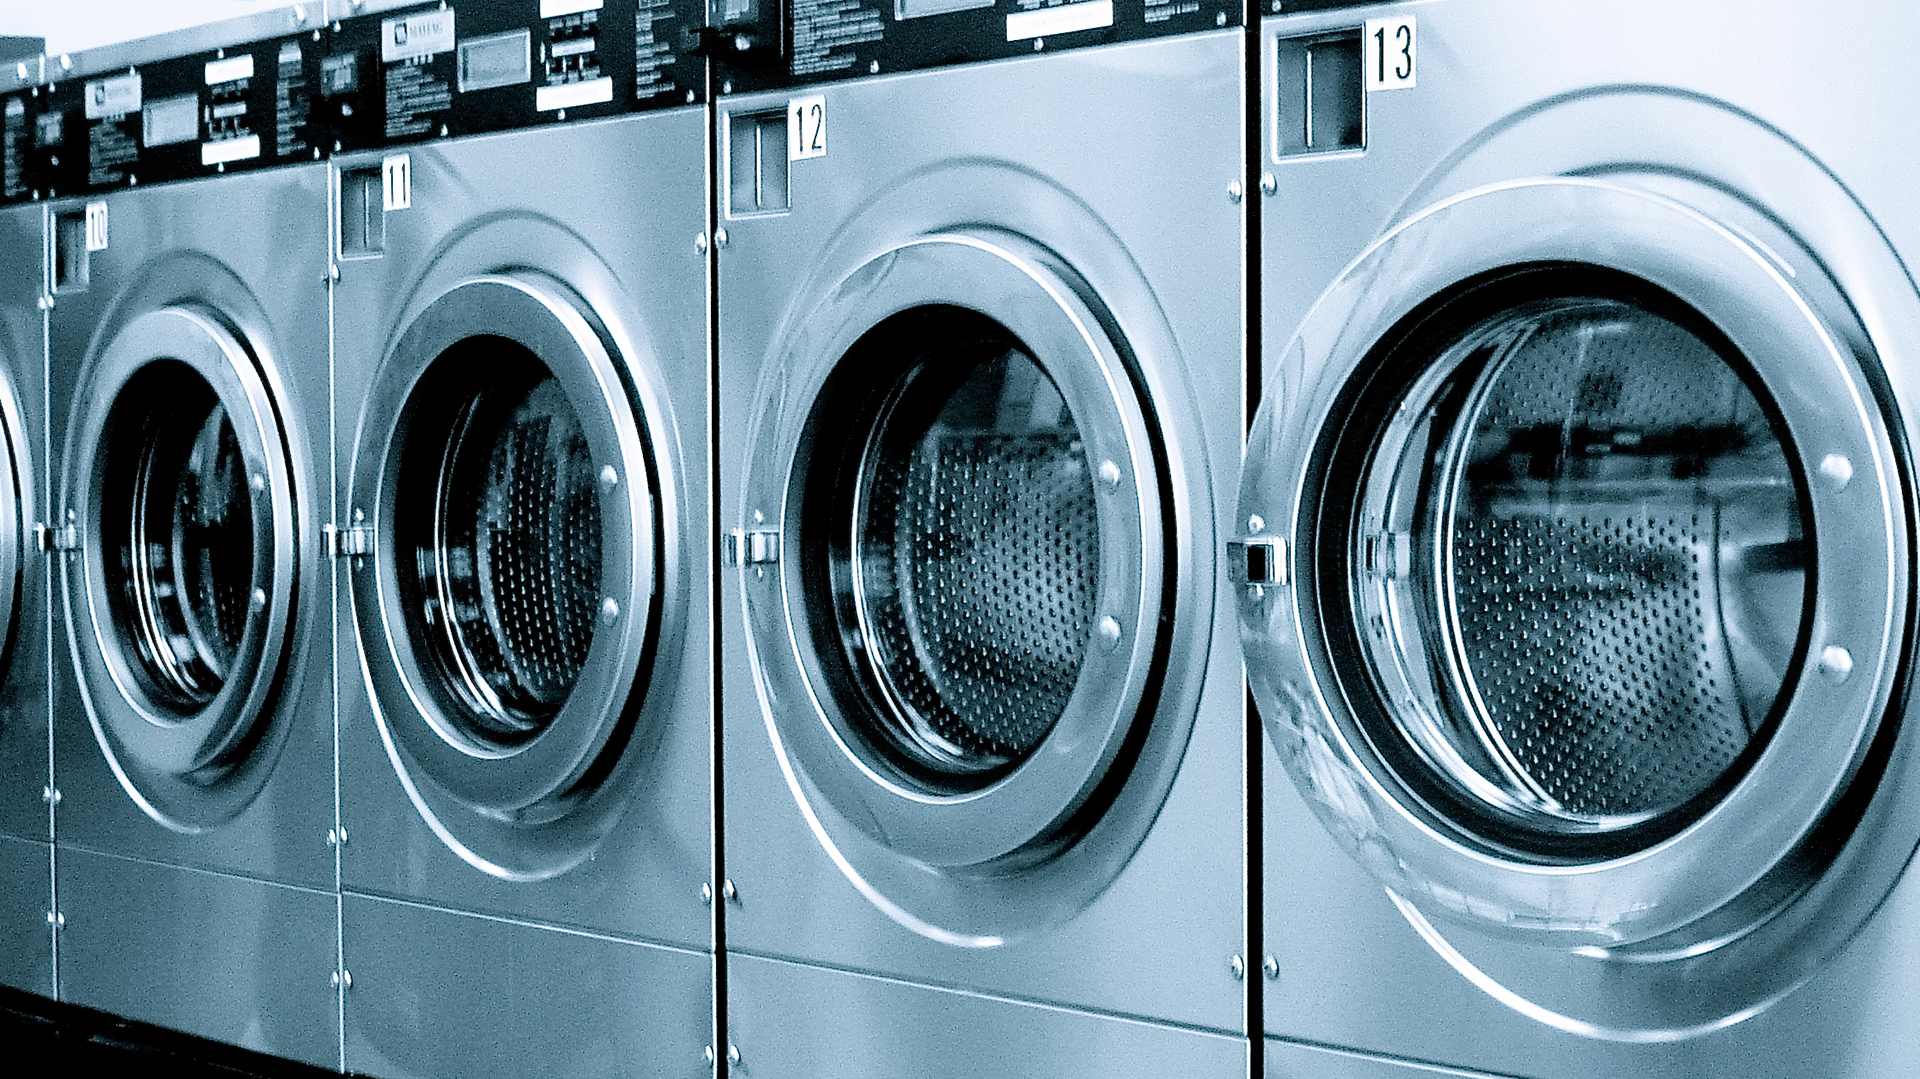 Commercial washers vs consumer washers